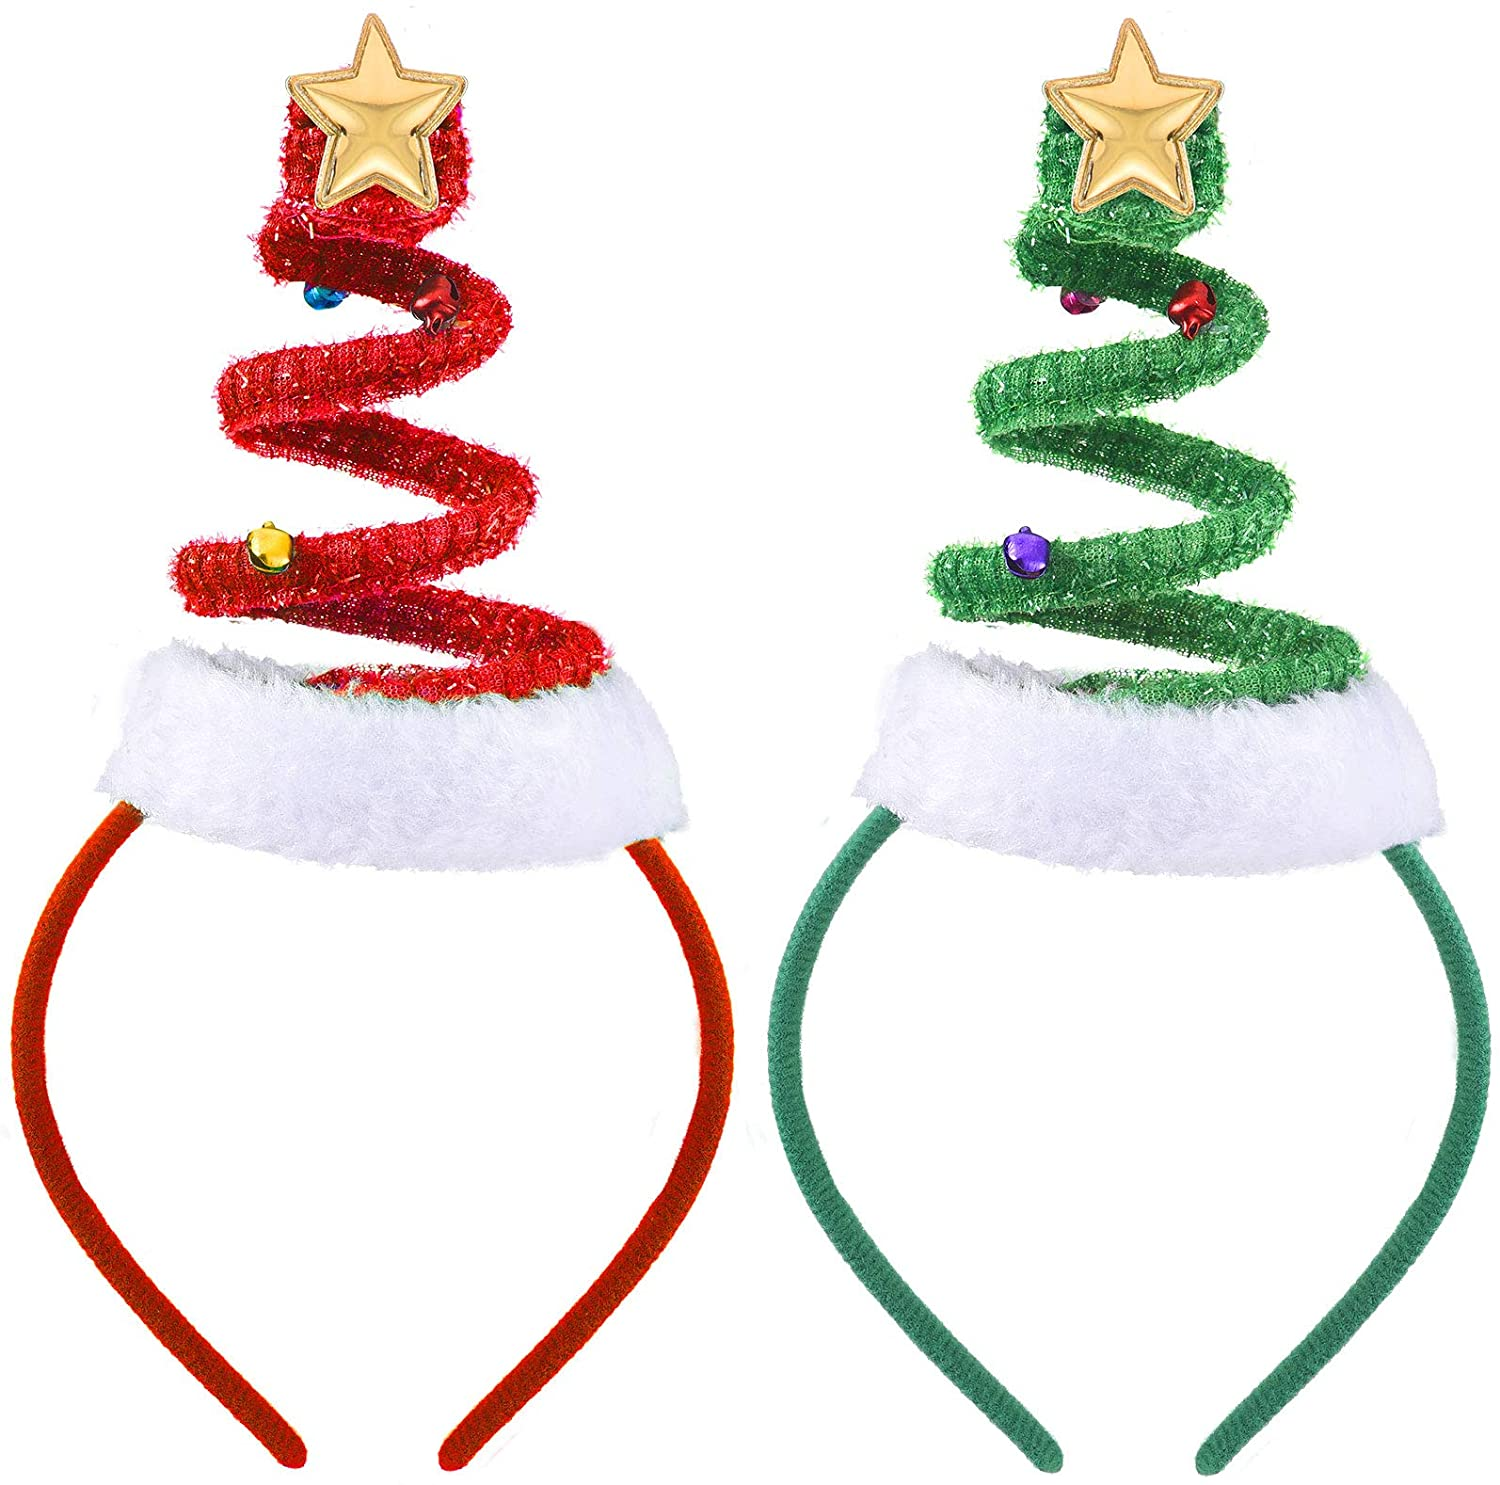 WILLBOND 2 Pieces Christmas Tree Headband with Bells Santa Headwear Red and Green Xmas Hairbands Party Accessory